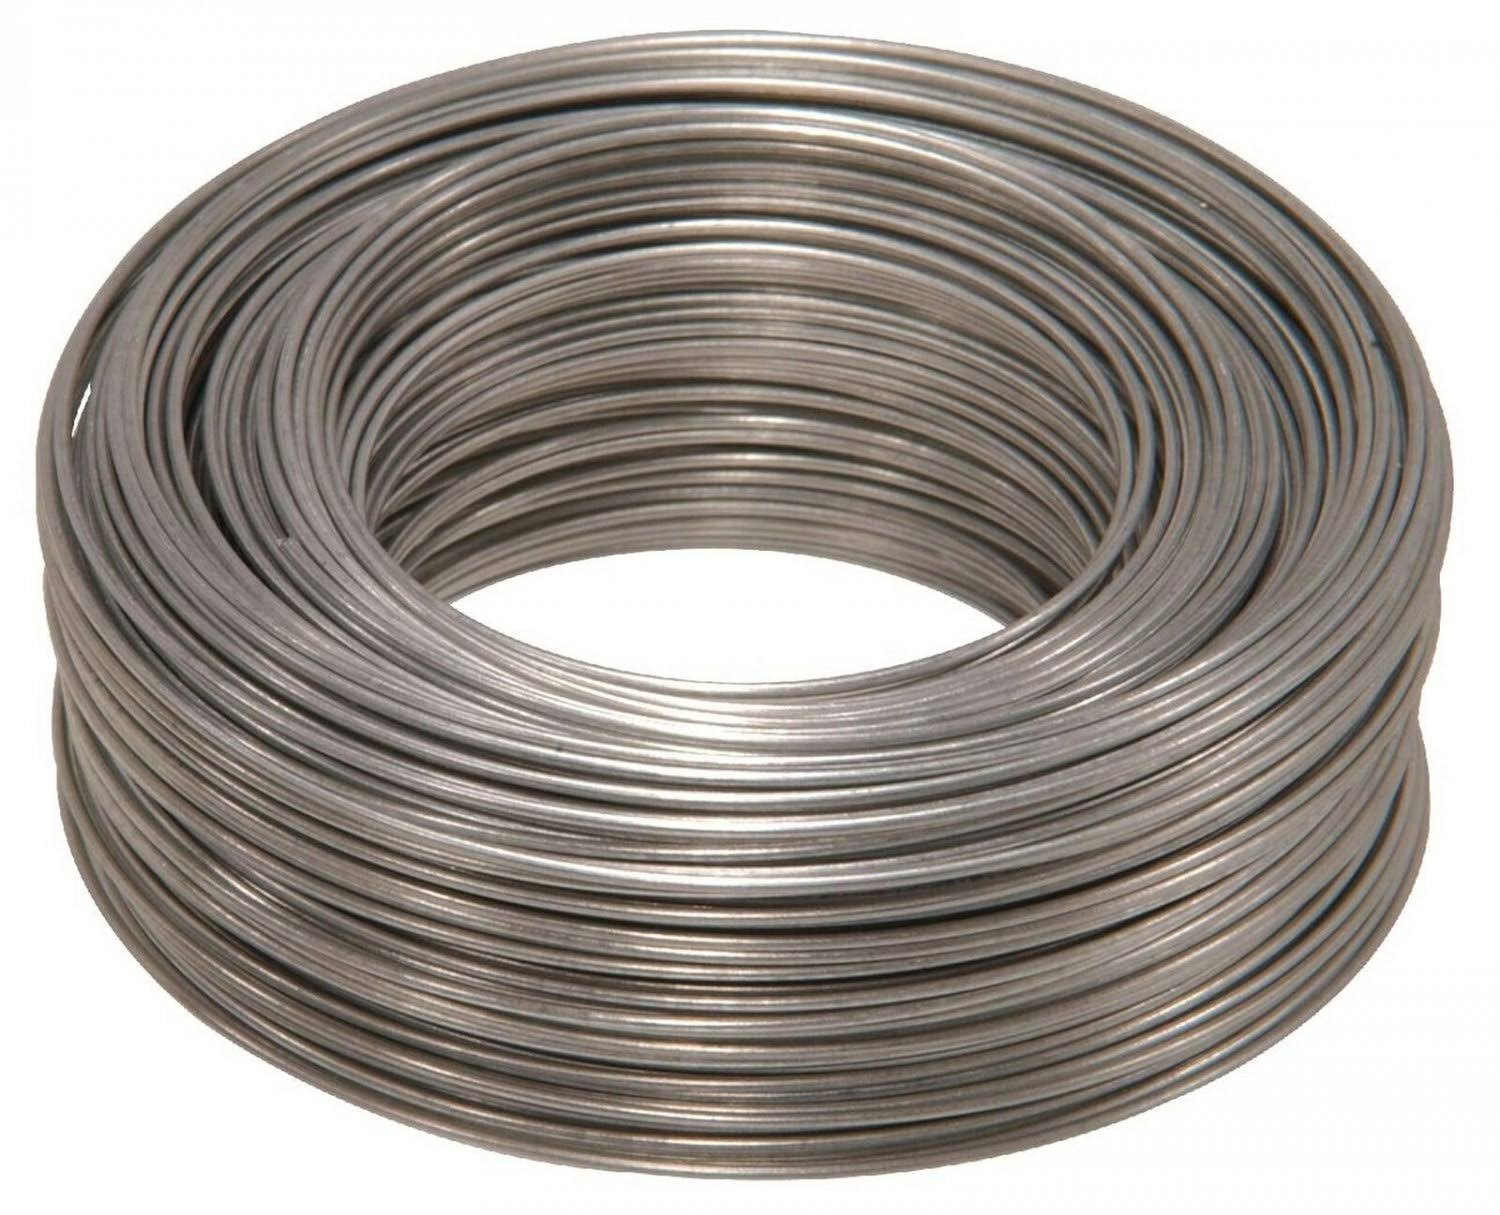 The Hillman Group 20-Gauge Galvanized Steel Wire - 175ft